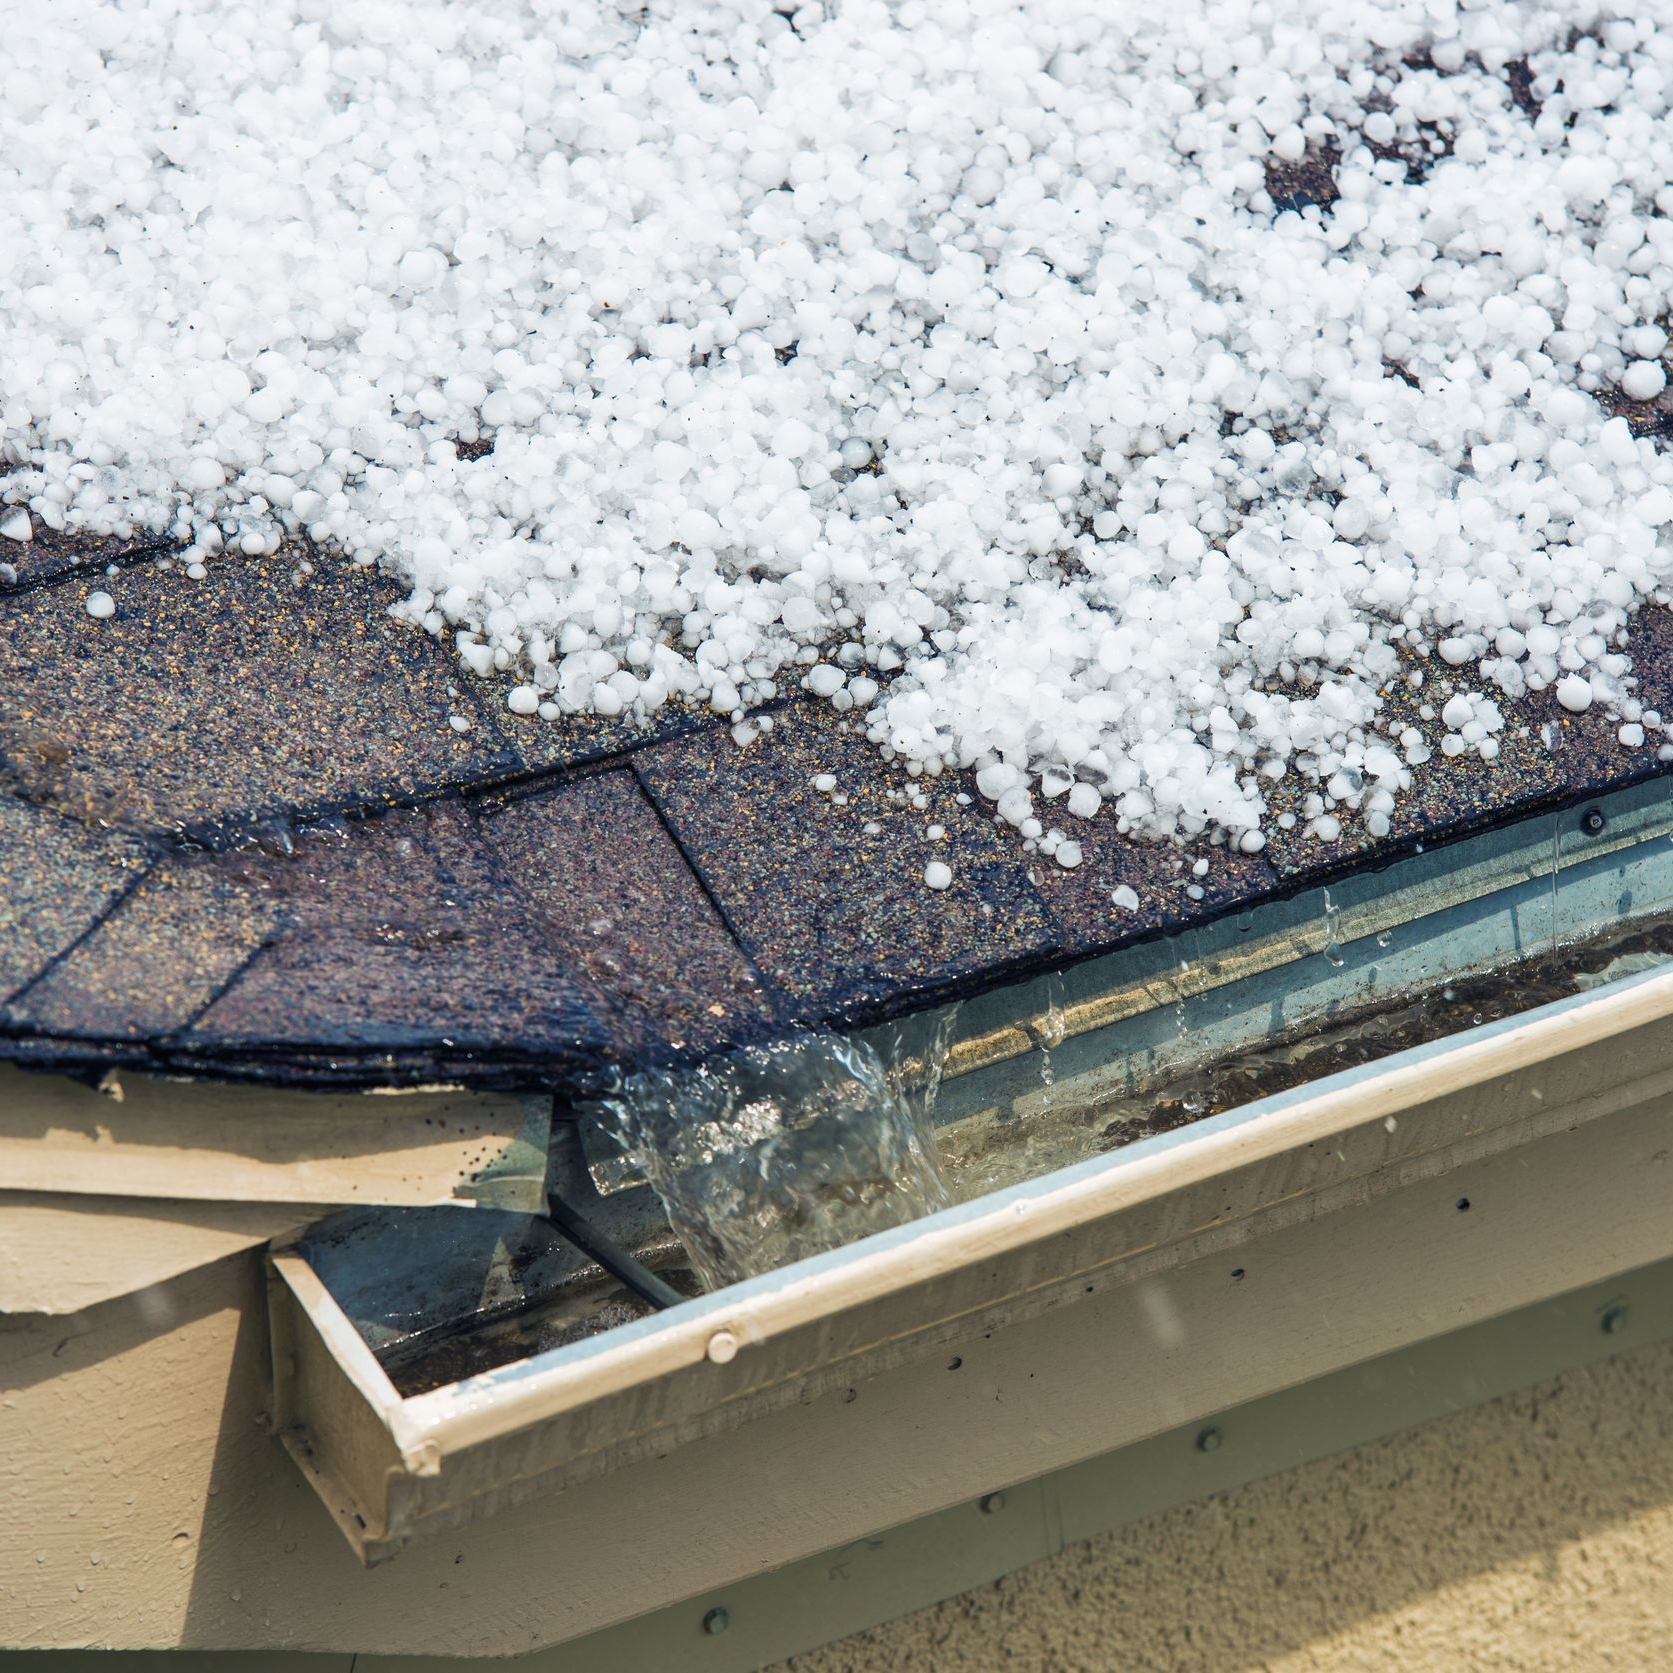 hail piled up on a roof